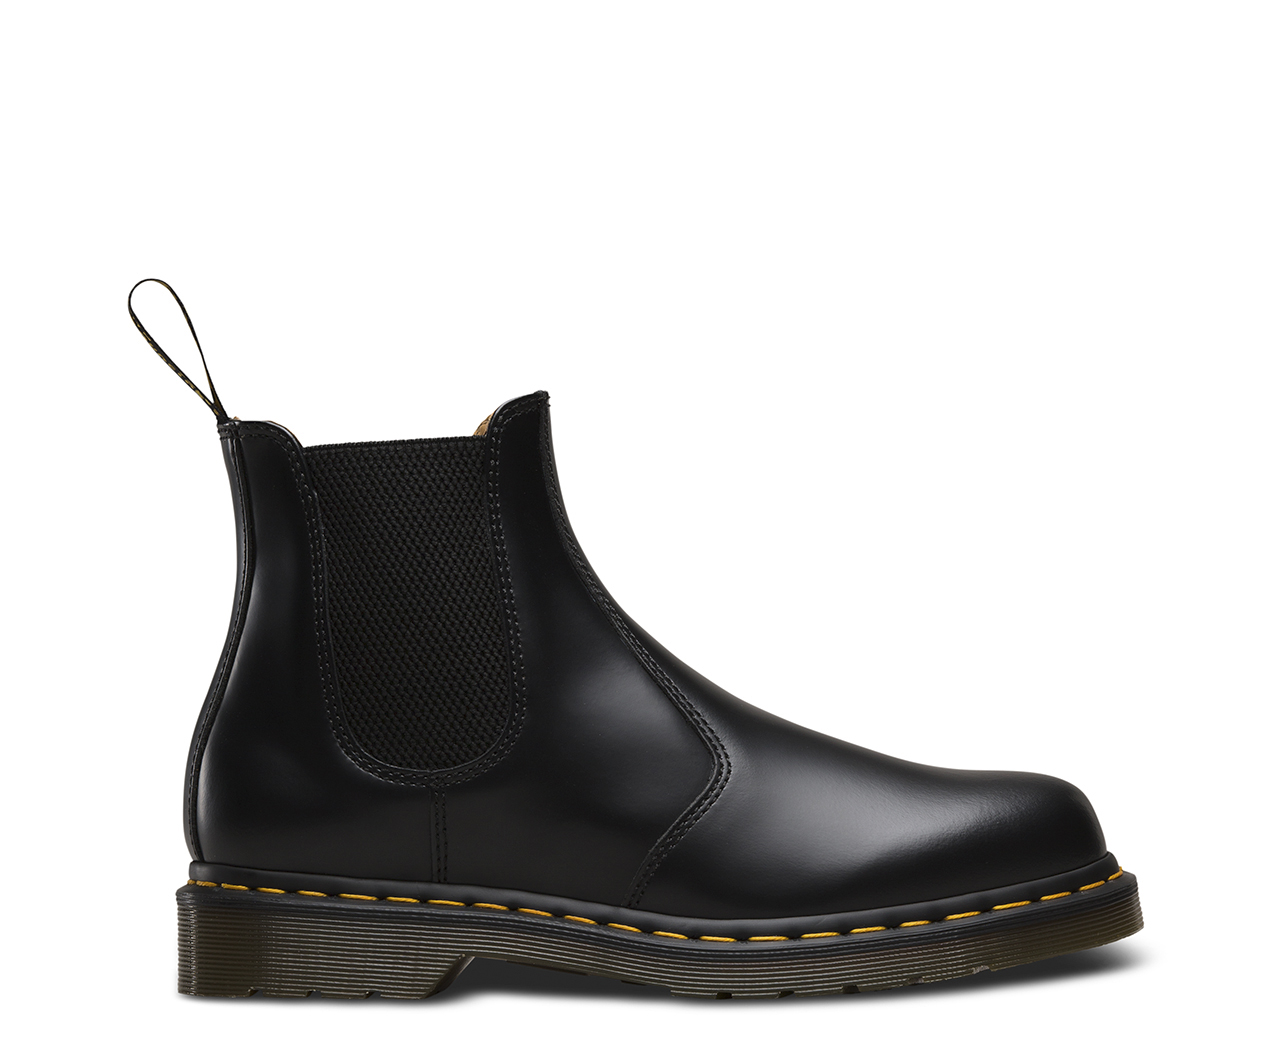 Dr Martens 2976 Yellow Stitch Black Smooth